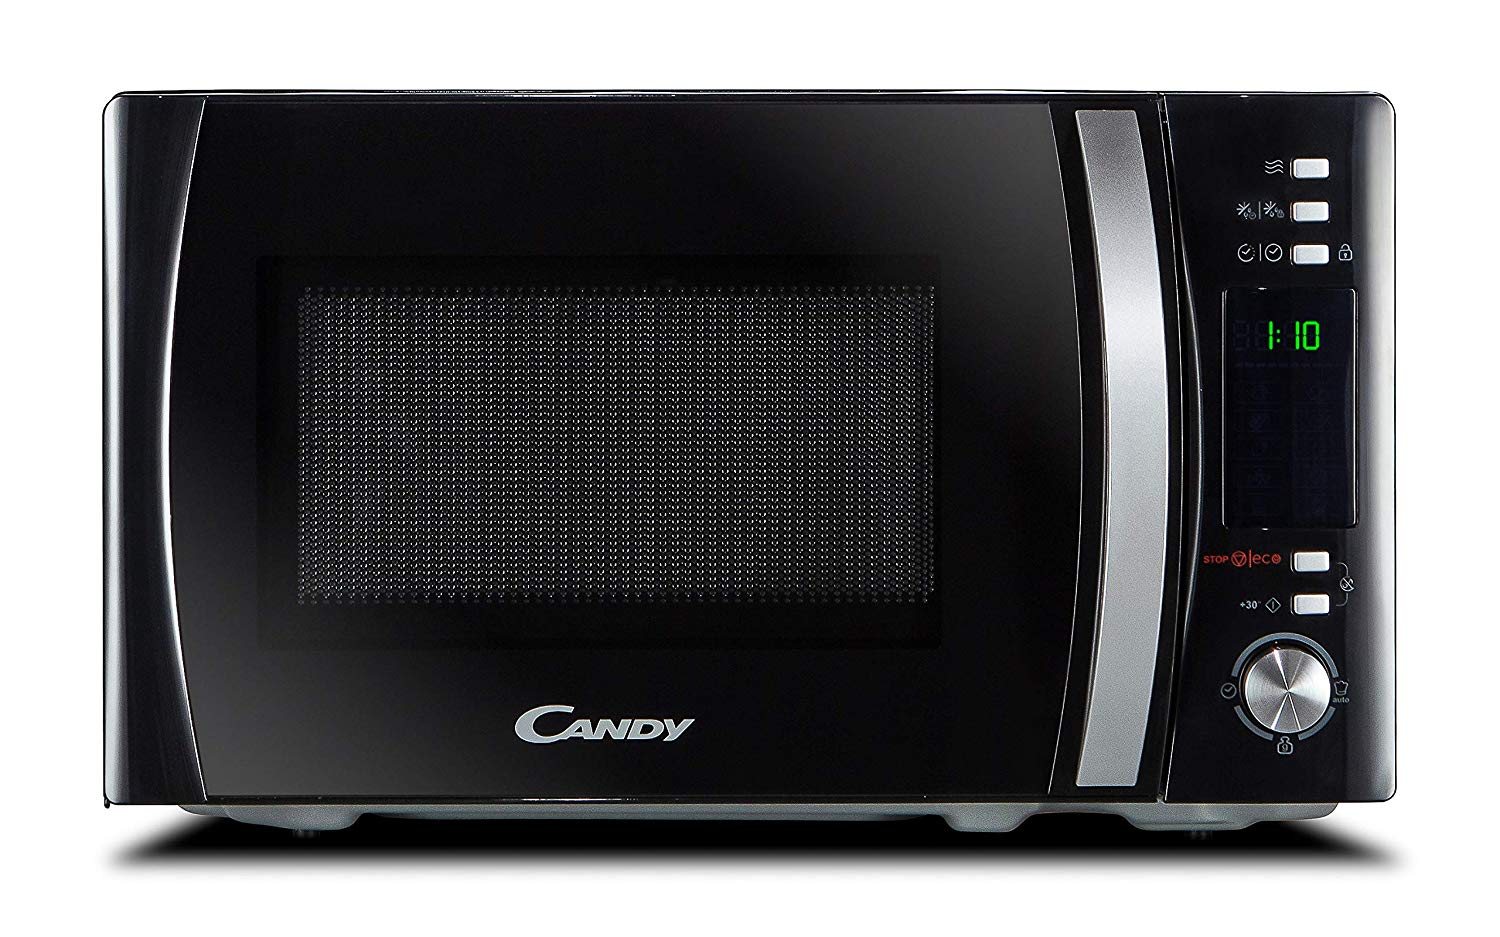 Candy 20L 700W Black Solo Microwave